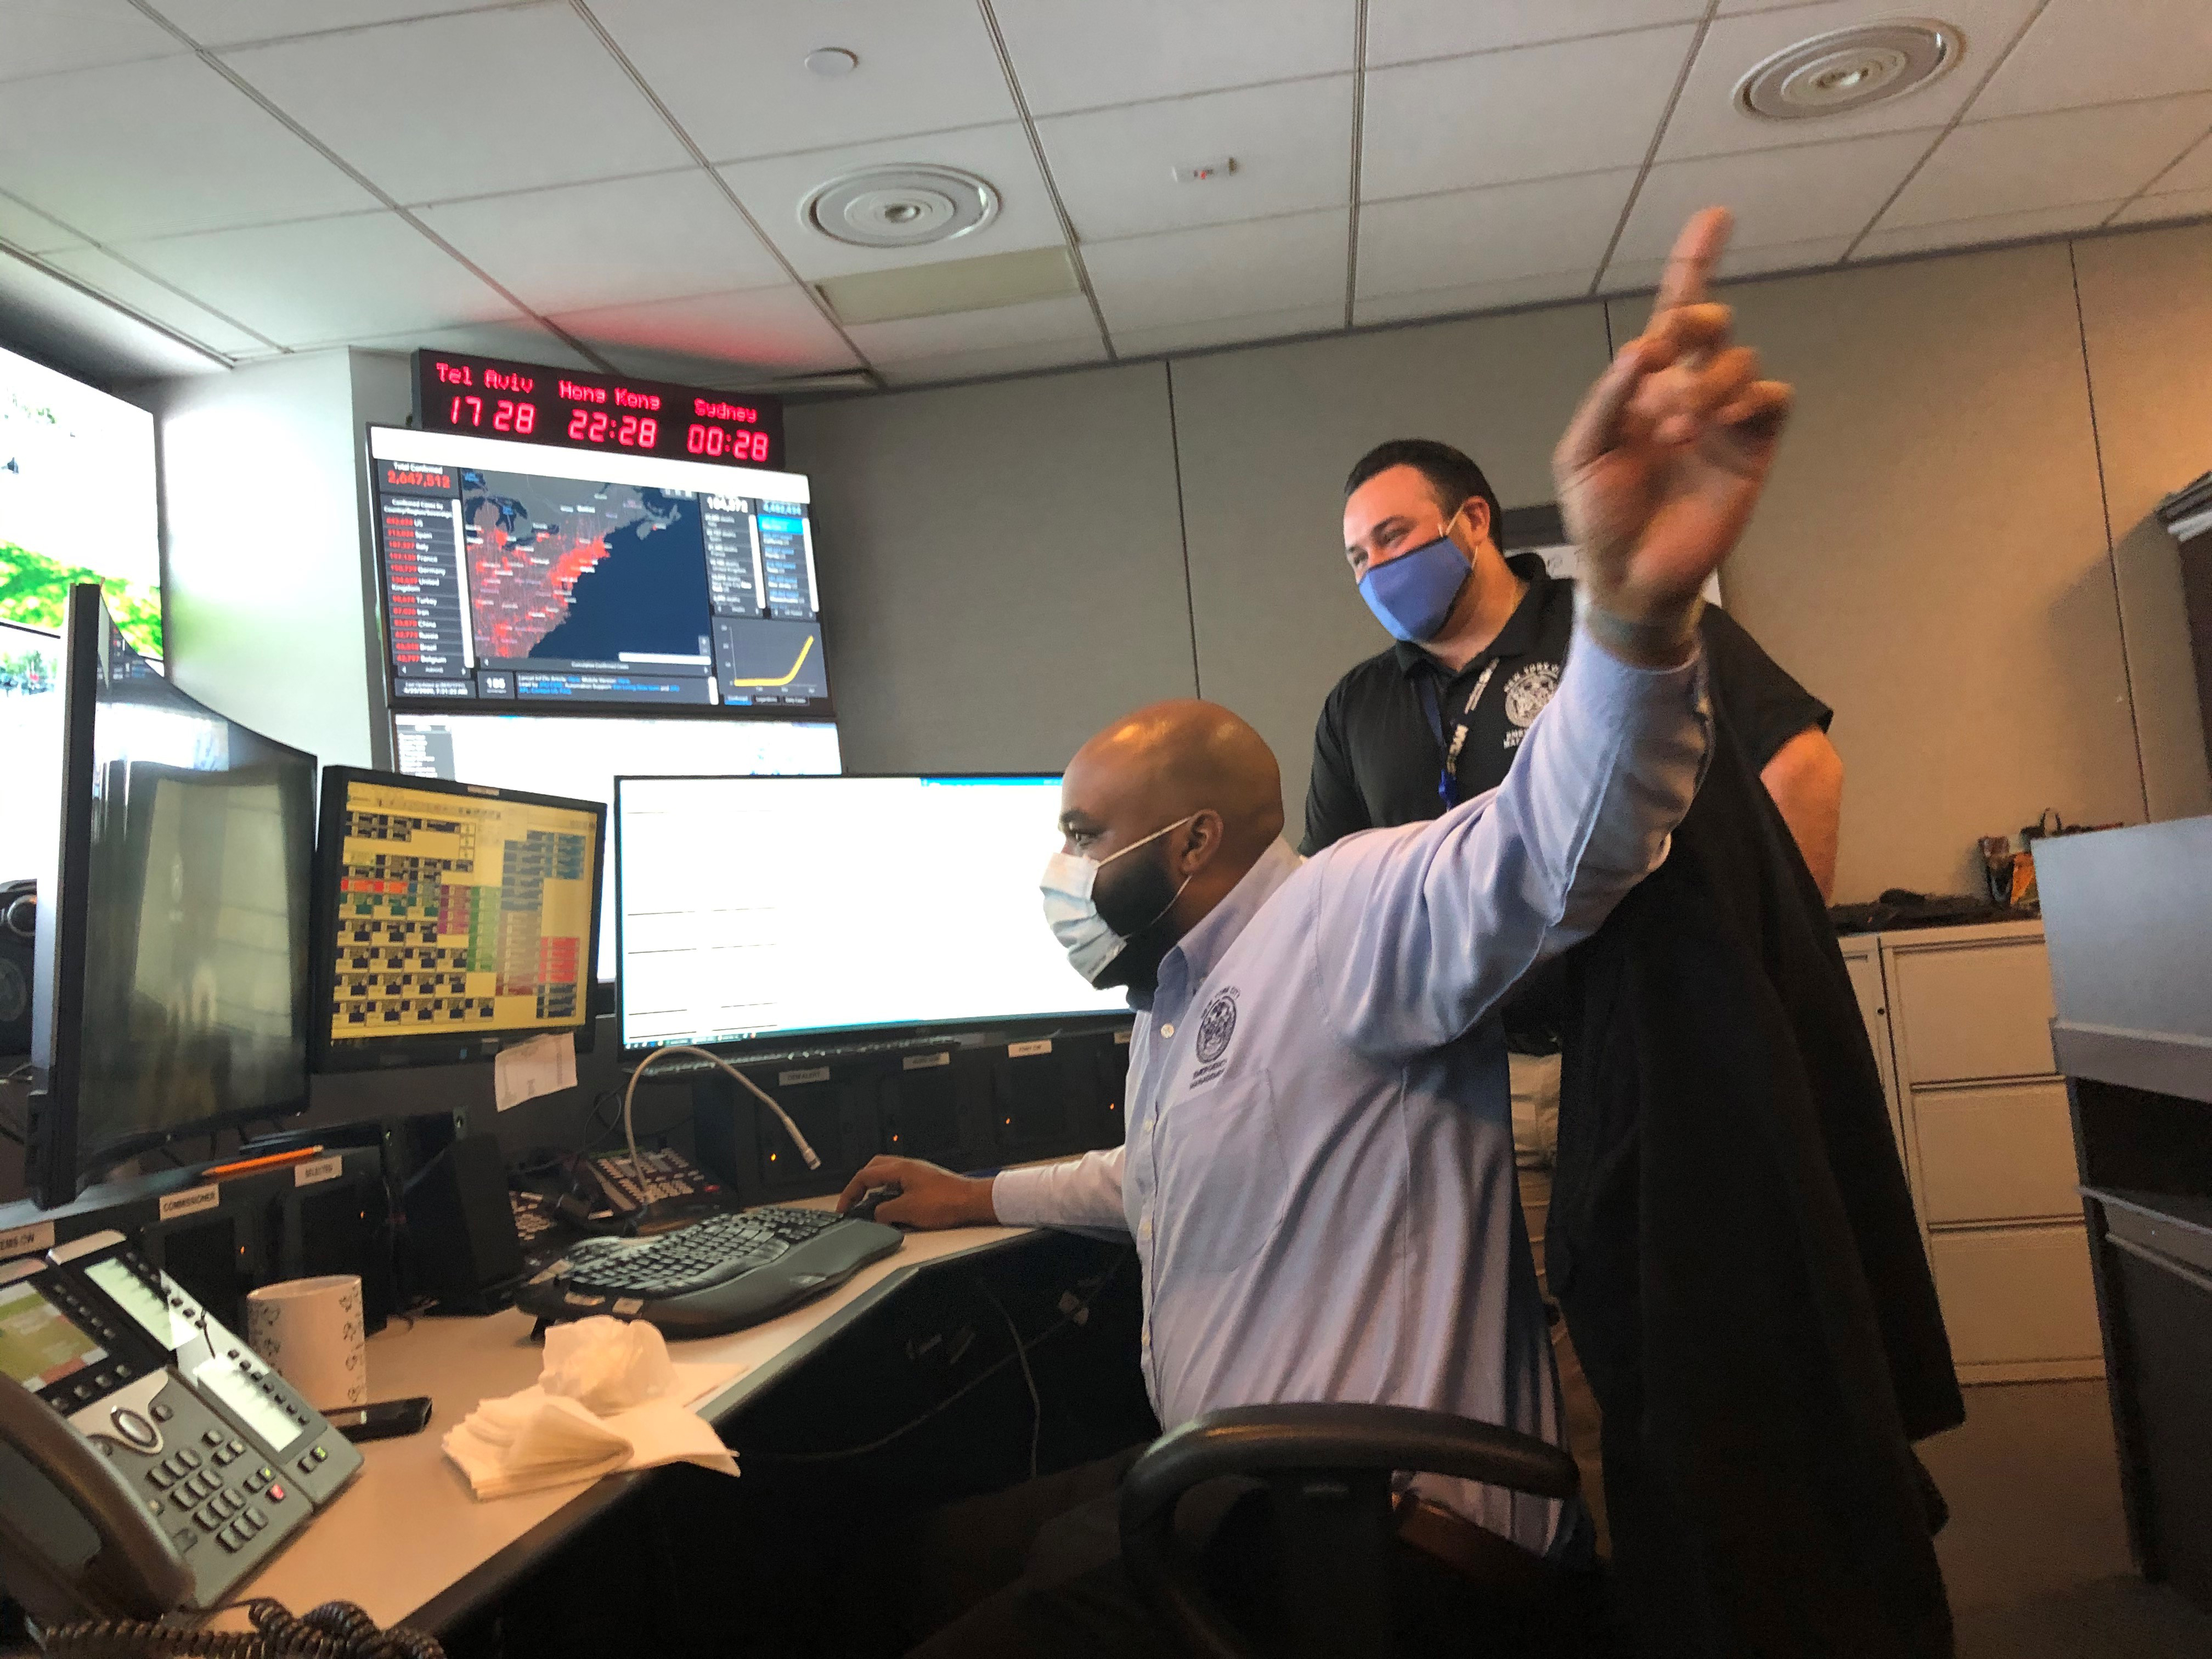 Torey Rowe (left) troubleshoots a desktop issue in NYC Emergency Management Watch Command.